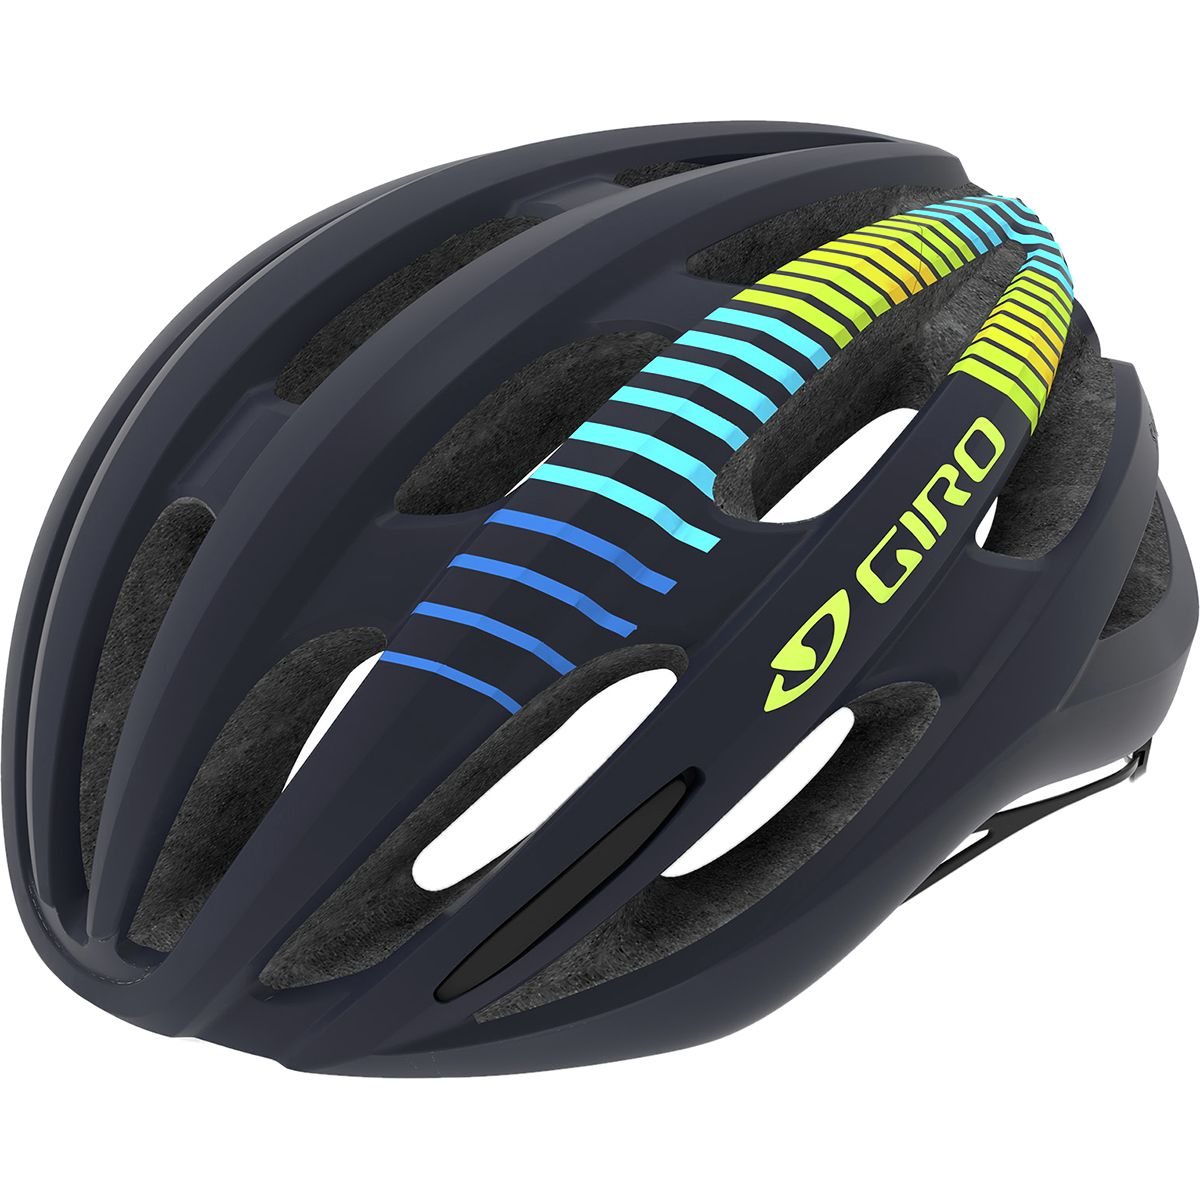 Giro - Saga MIPS Helmet - Women's - Midnight Heatwave